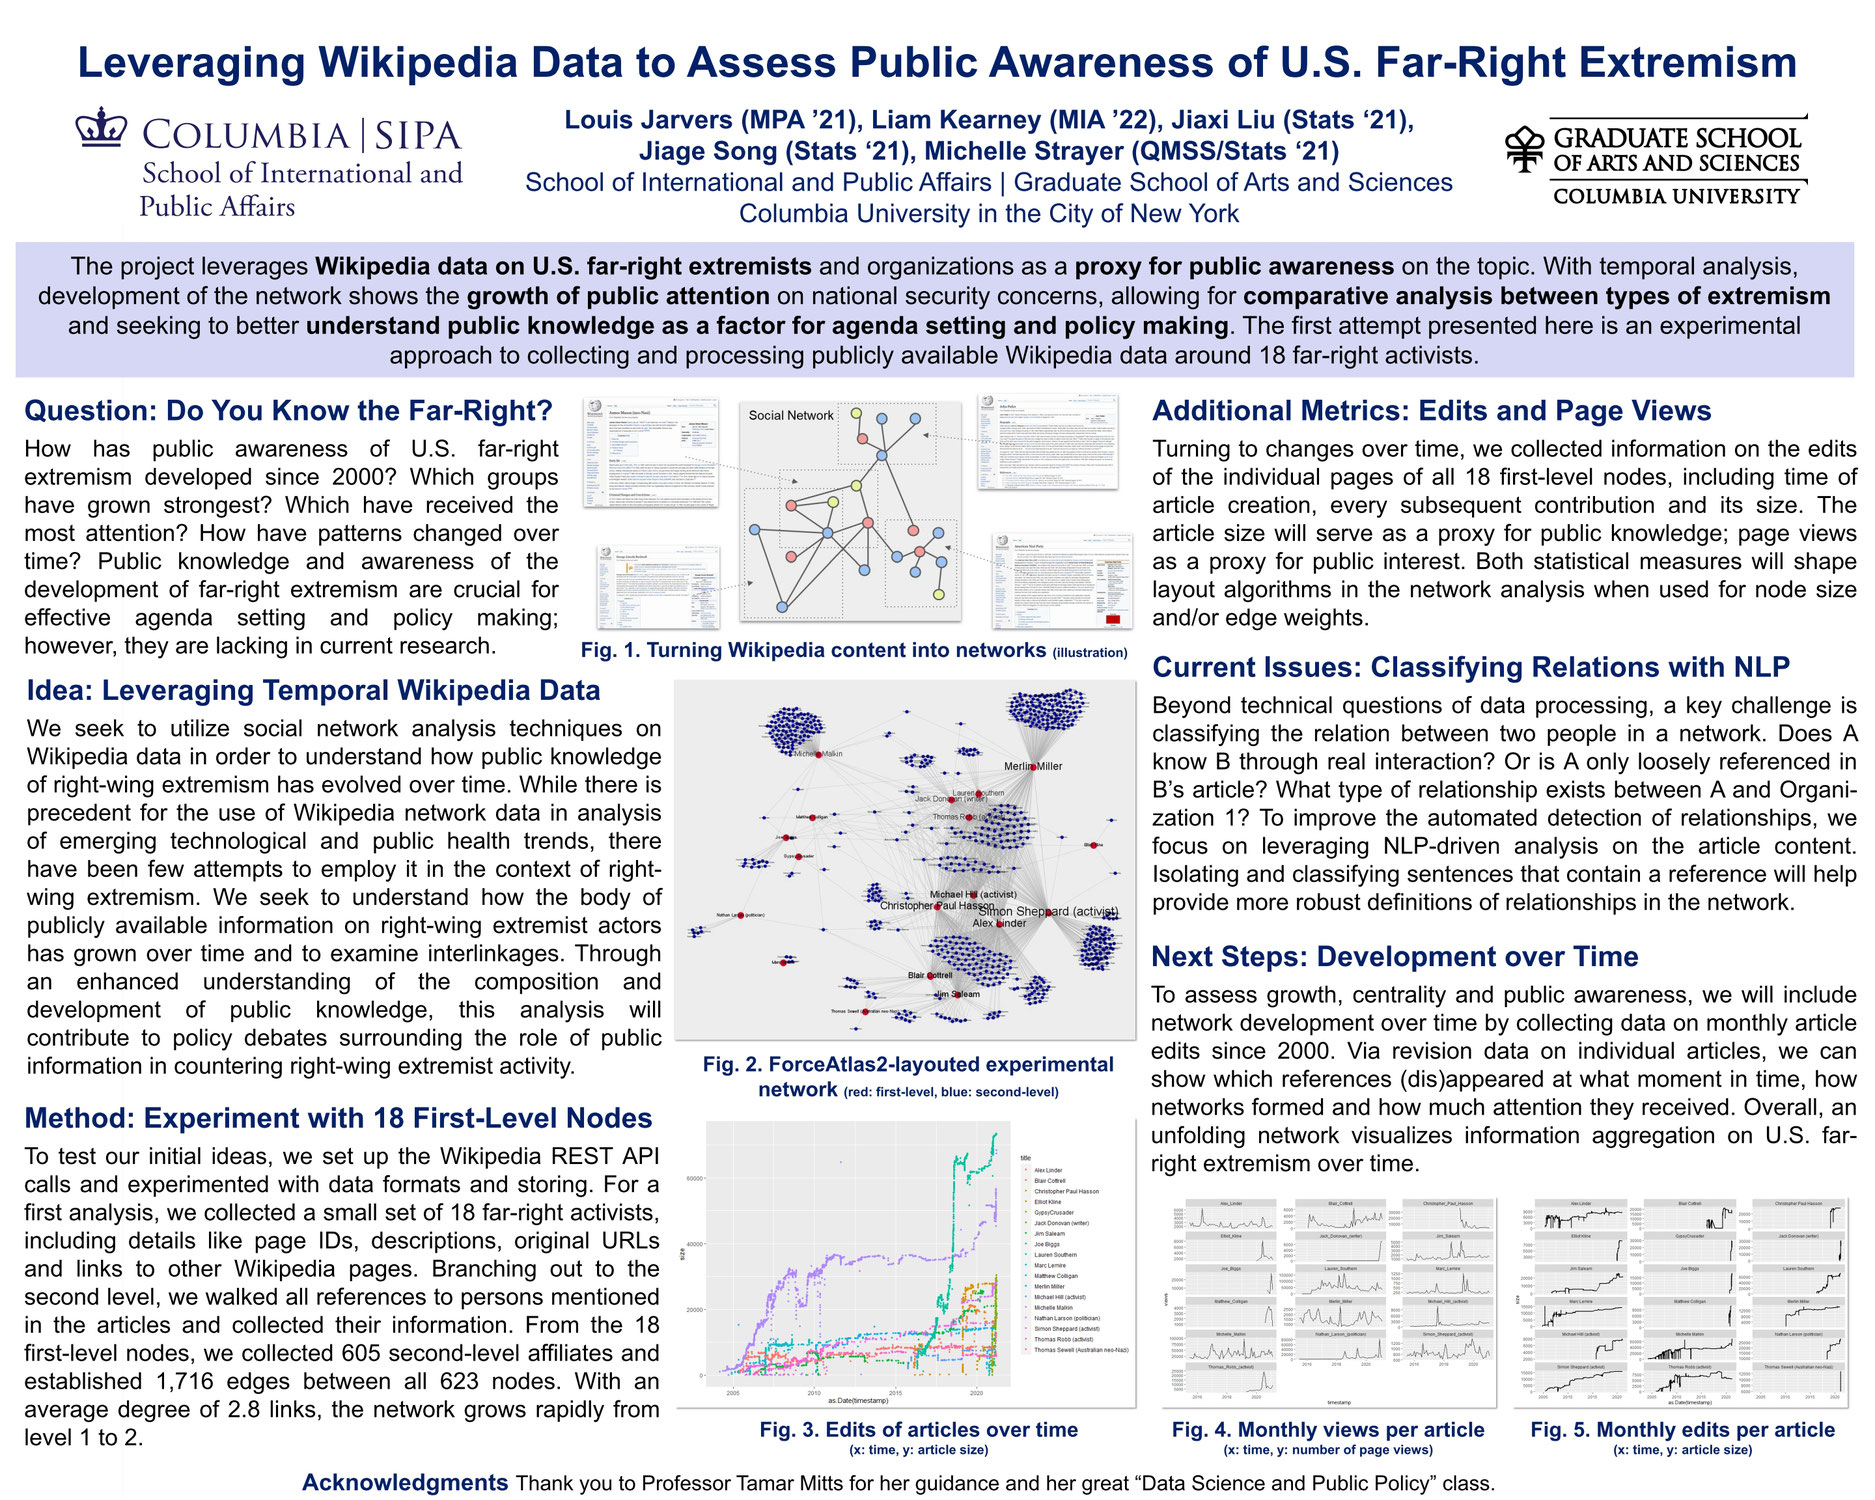 What Can Wikipedia Data Tell Us about U.S. Far-Right Extremism? - A Research Proposal